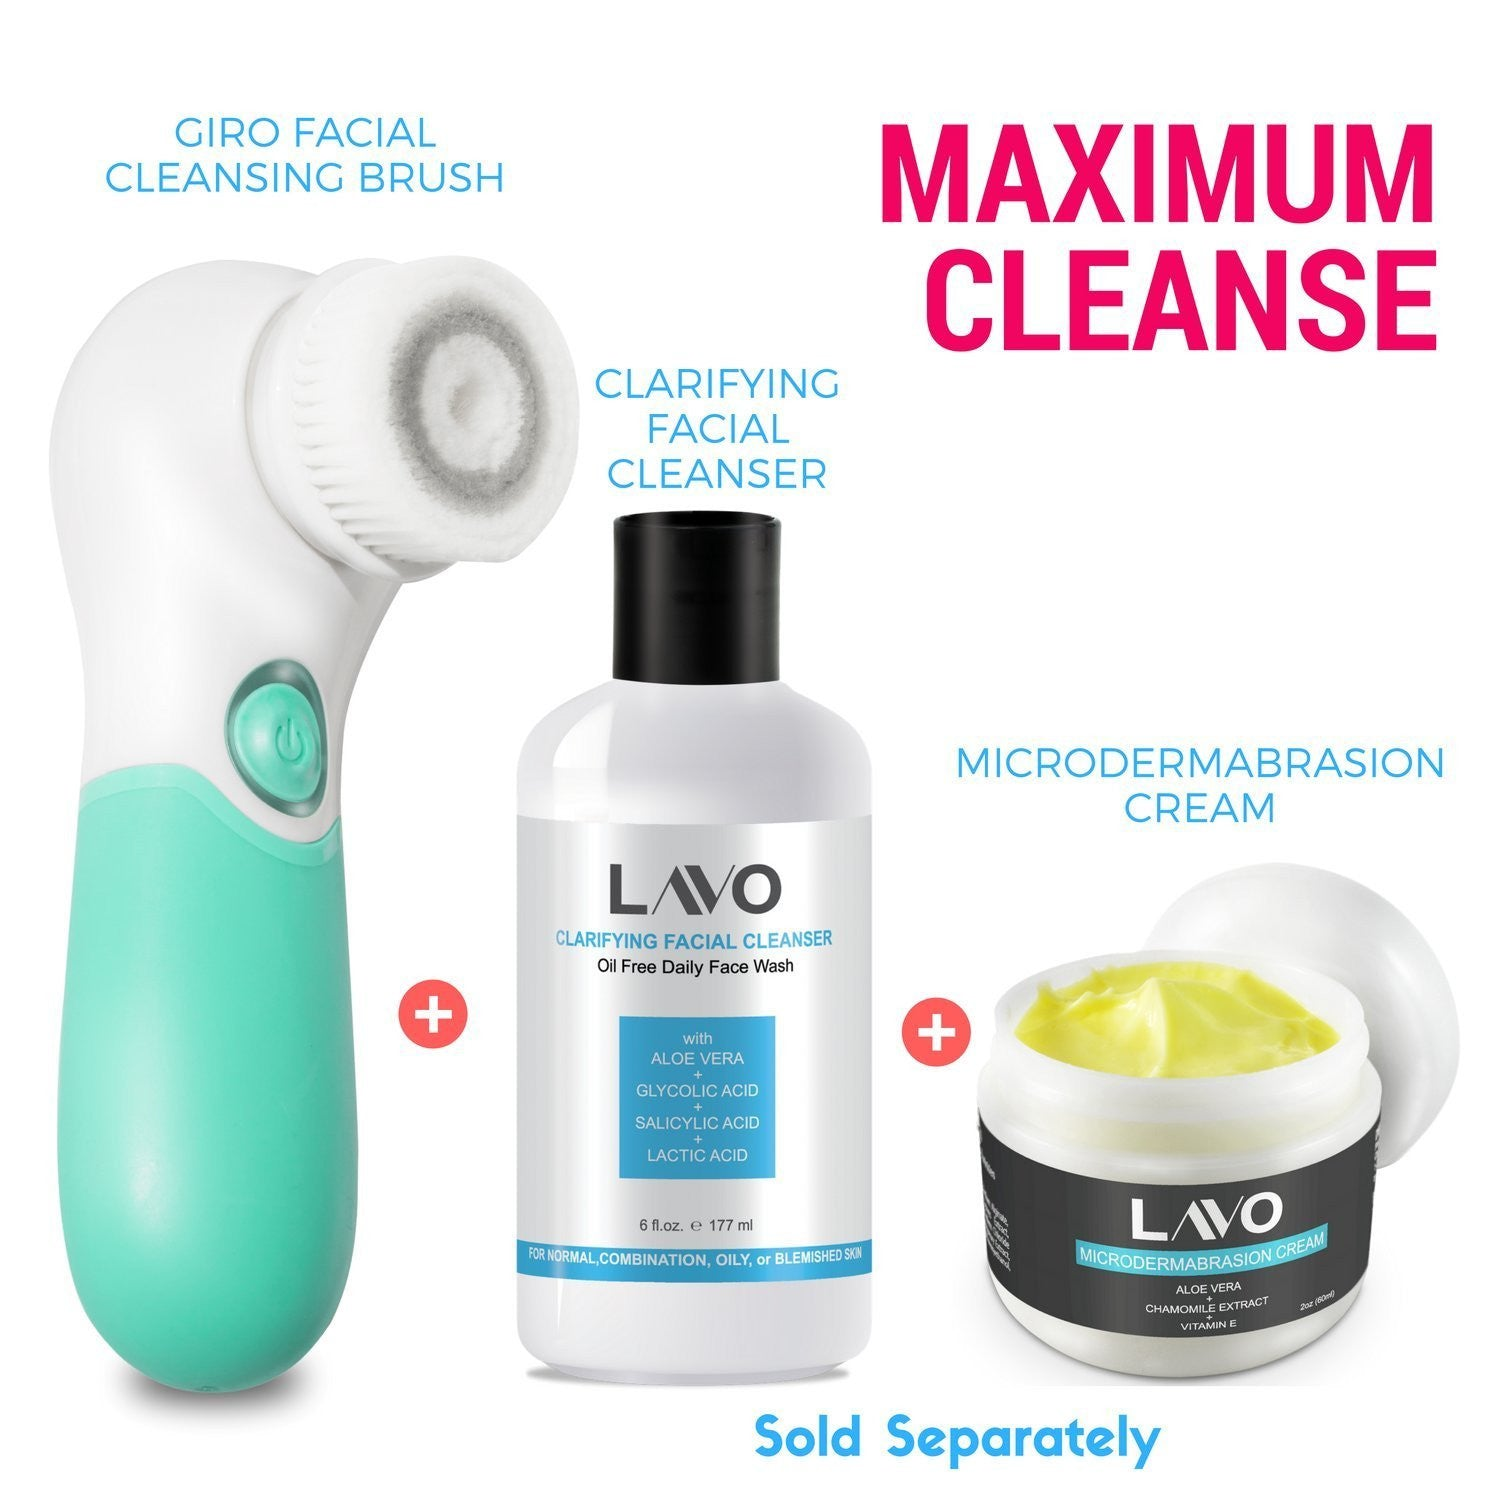 LAVO Giro Facial Cleansing Brush